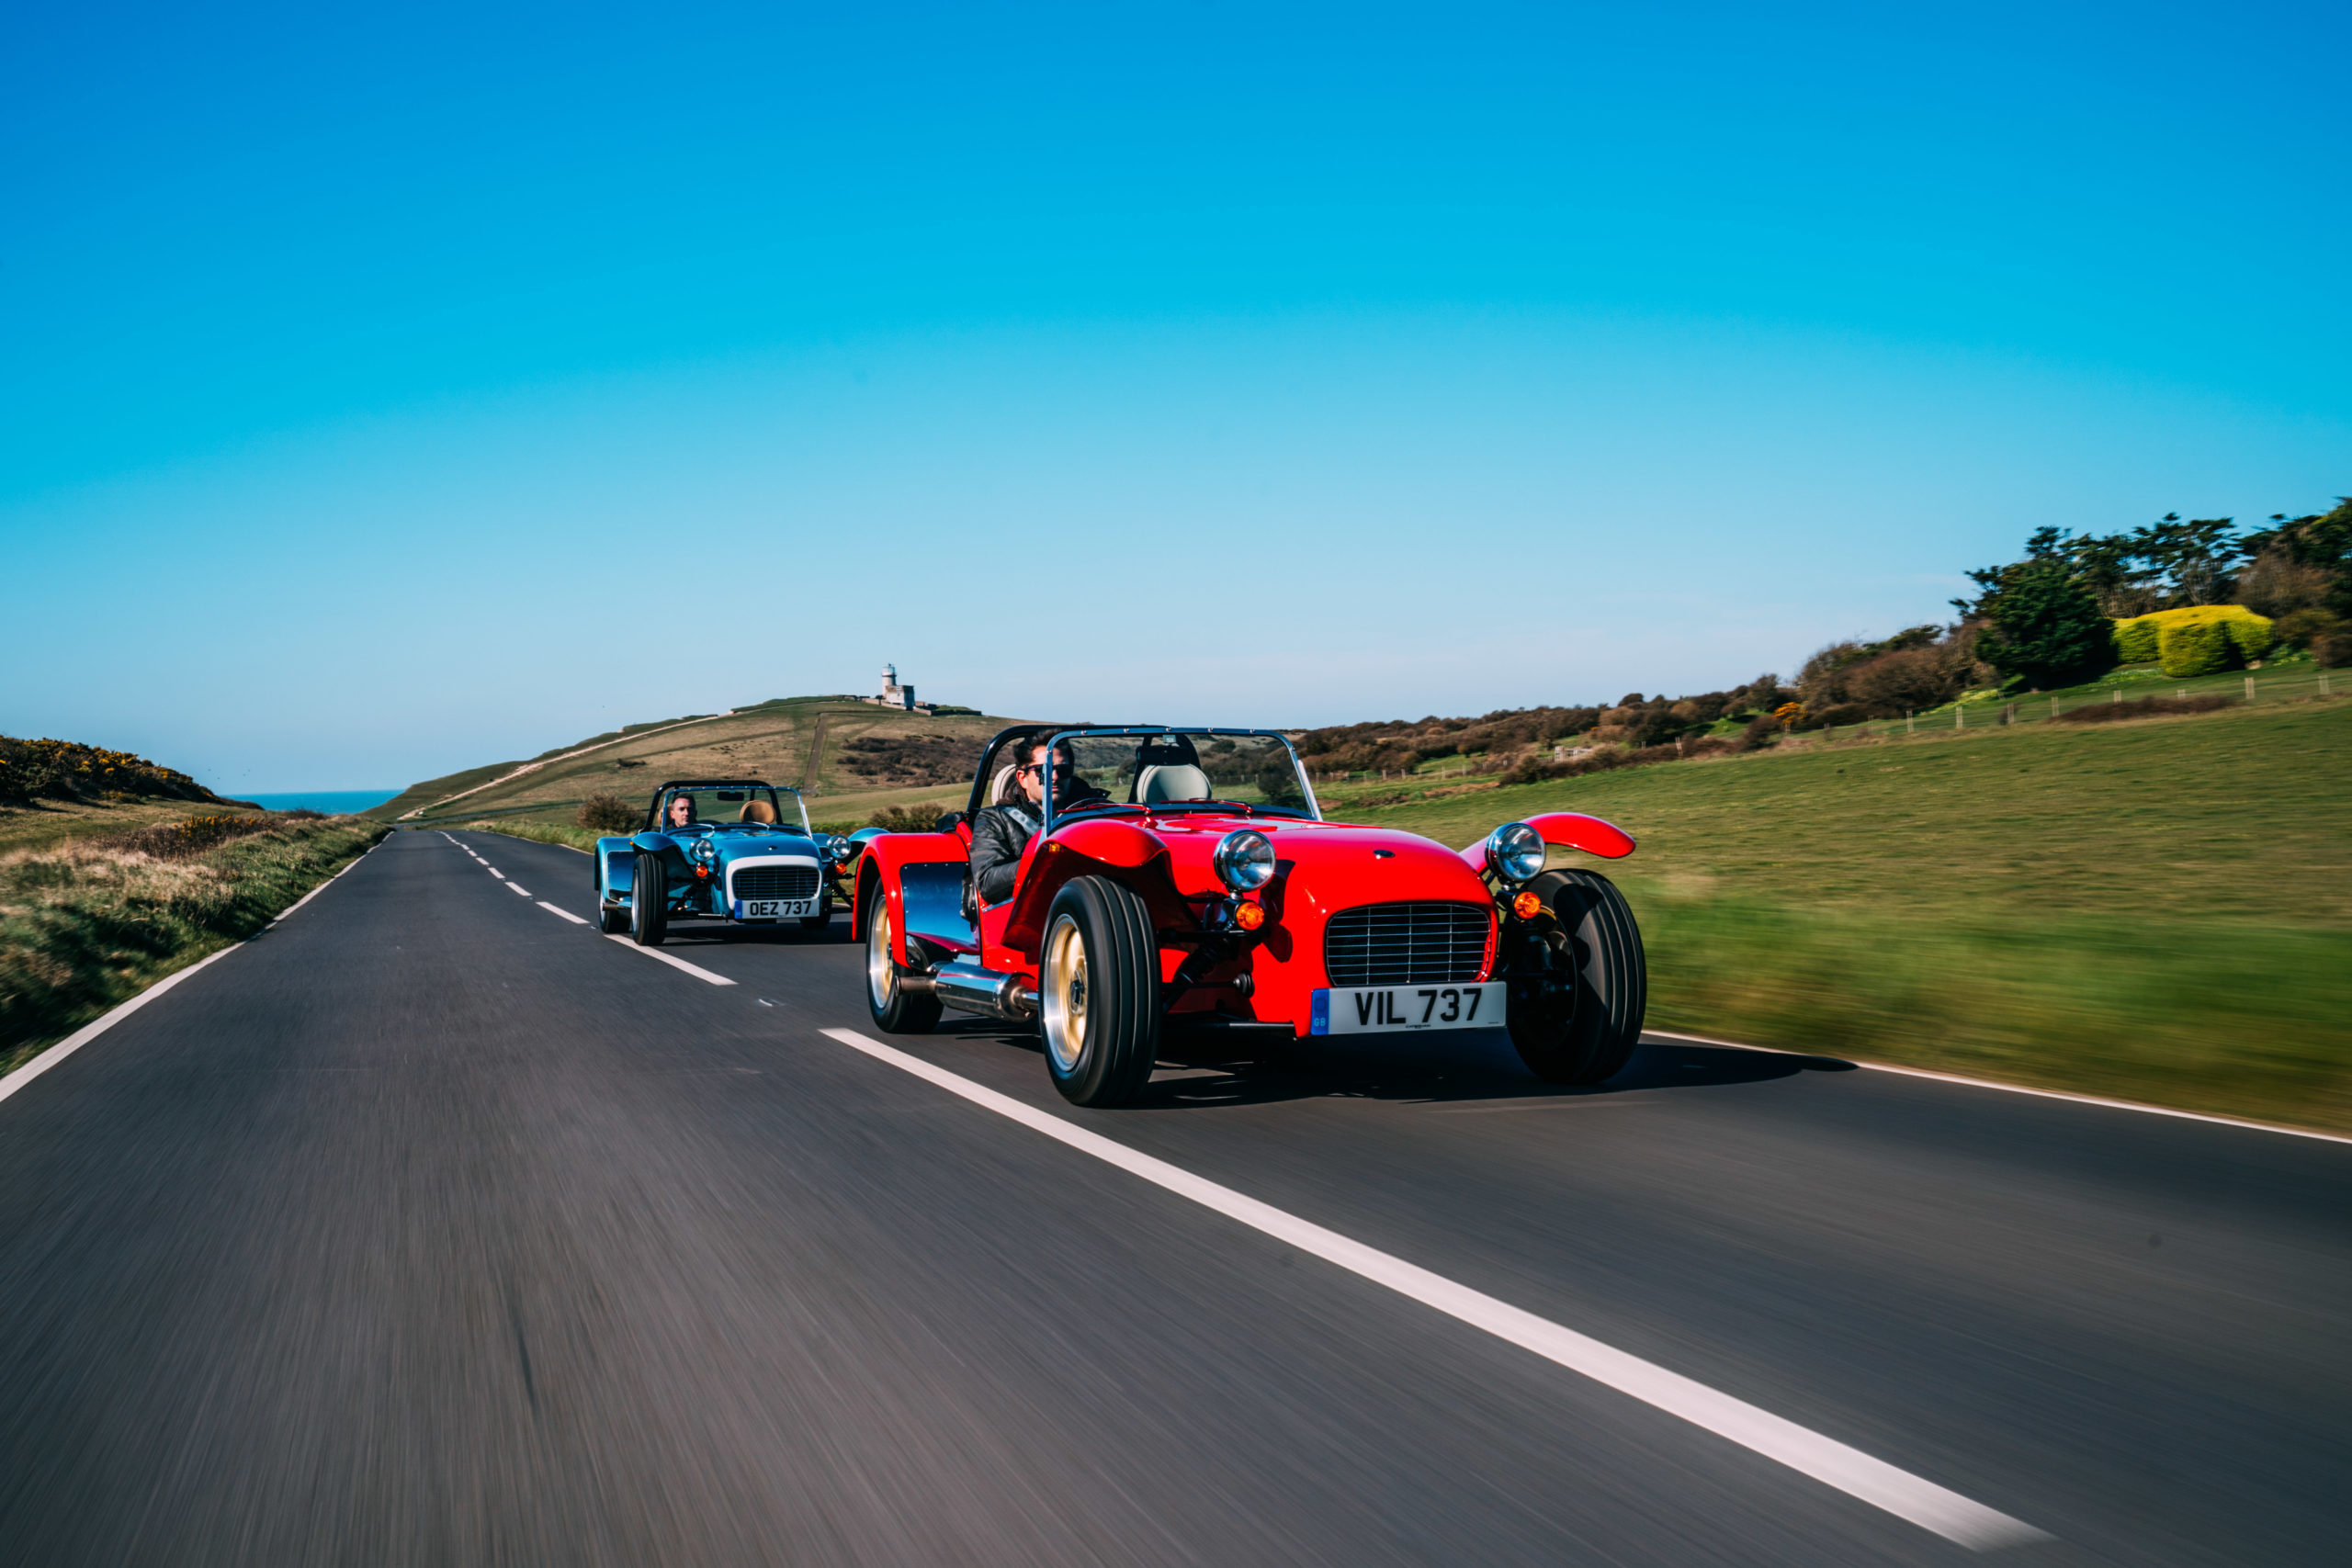 Scenic Drives UK - the South Downs in a Caterham!